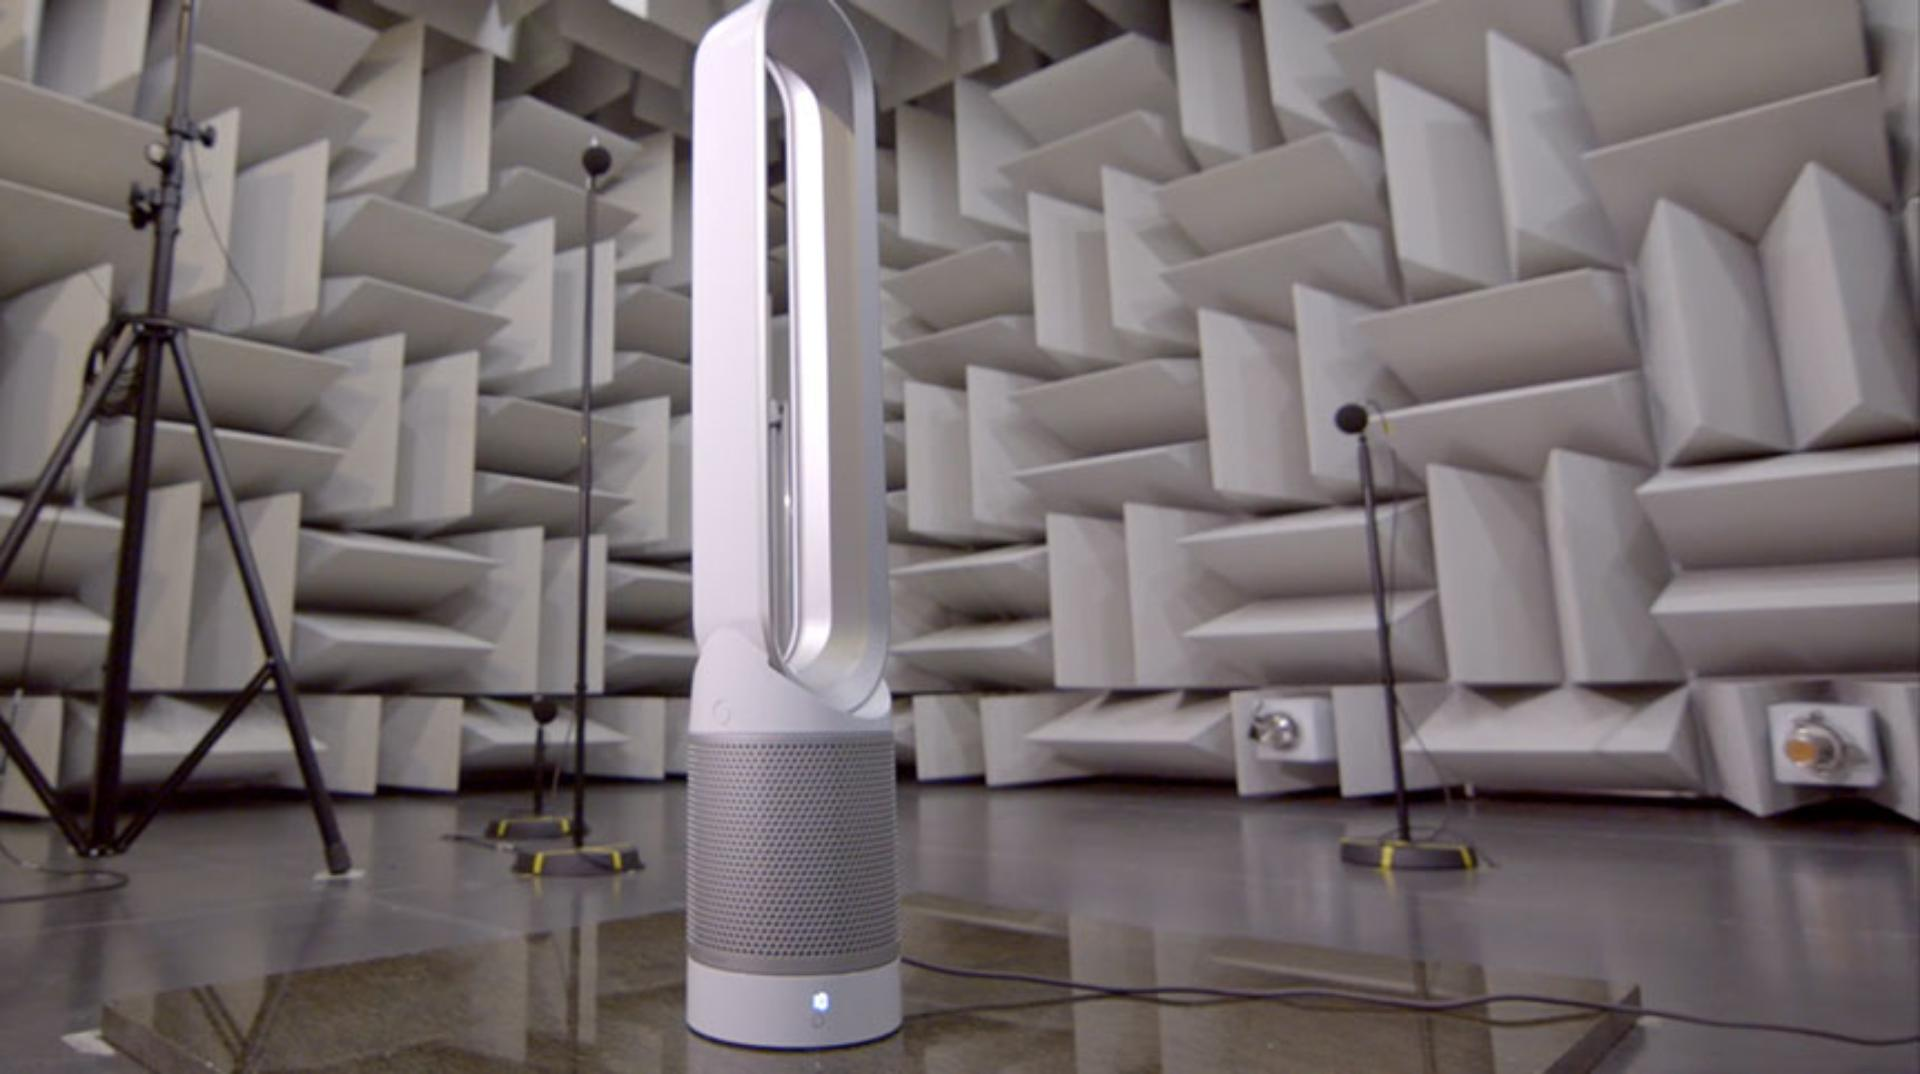 Dyson purifier in acoustic chamber